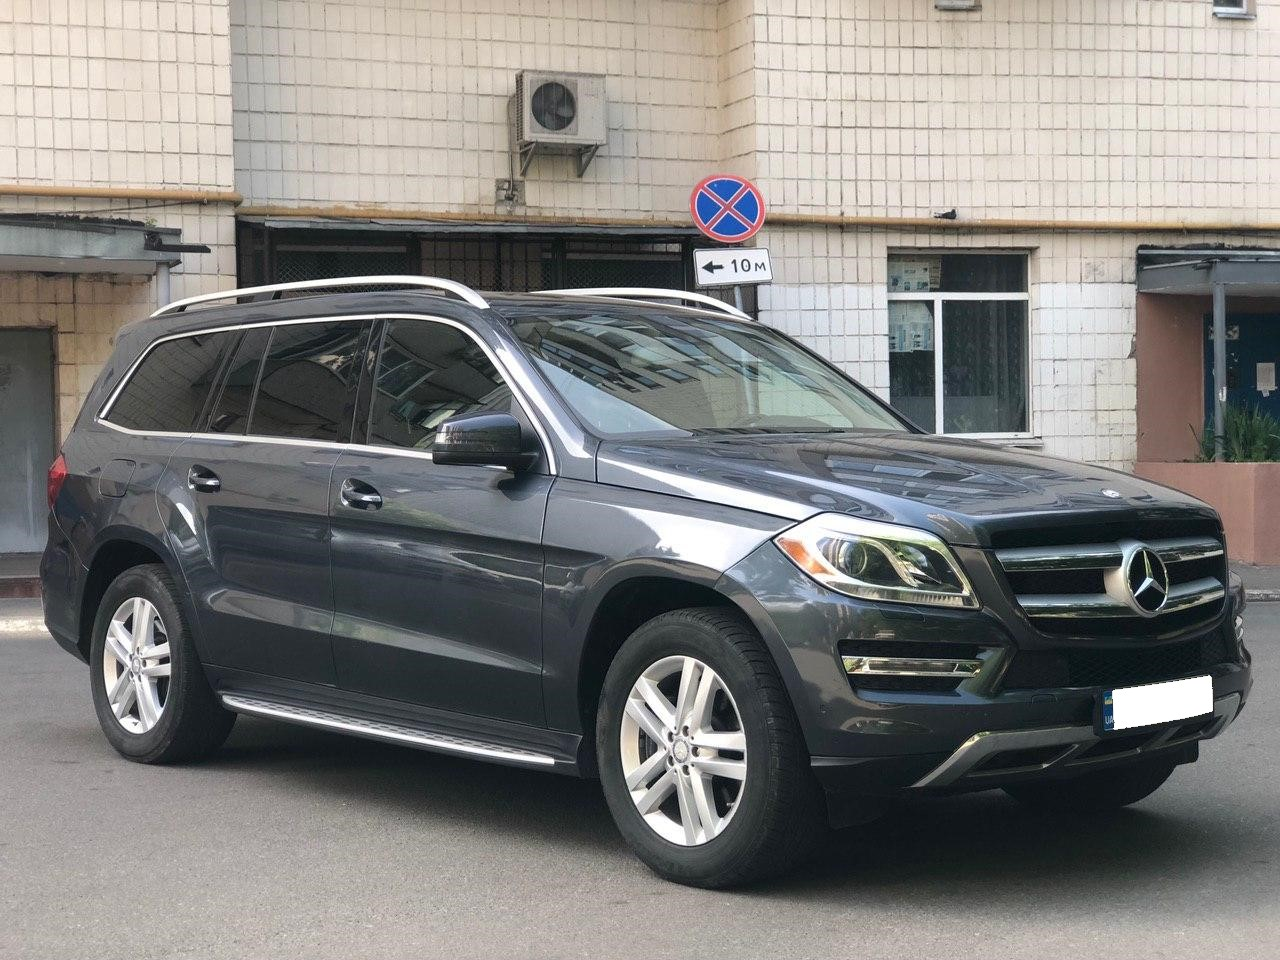 Прокат авто Mercedes-Benz GL 450 4MATIC в Киеве - фото 4